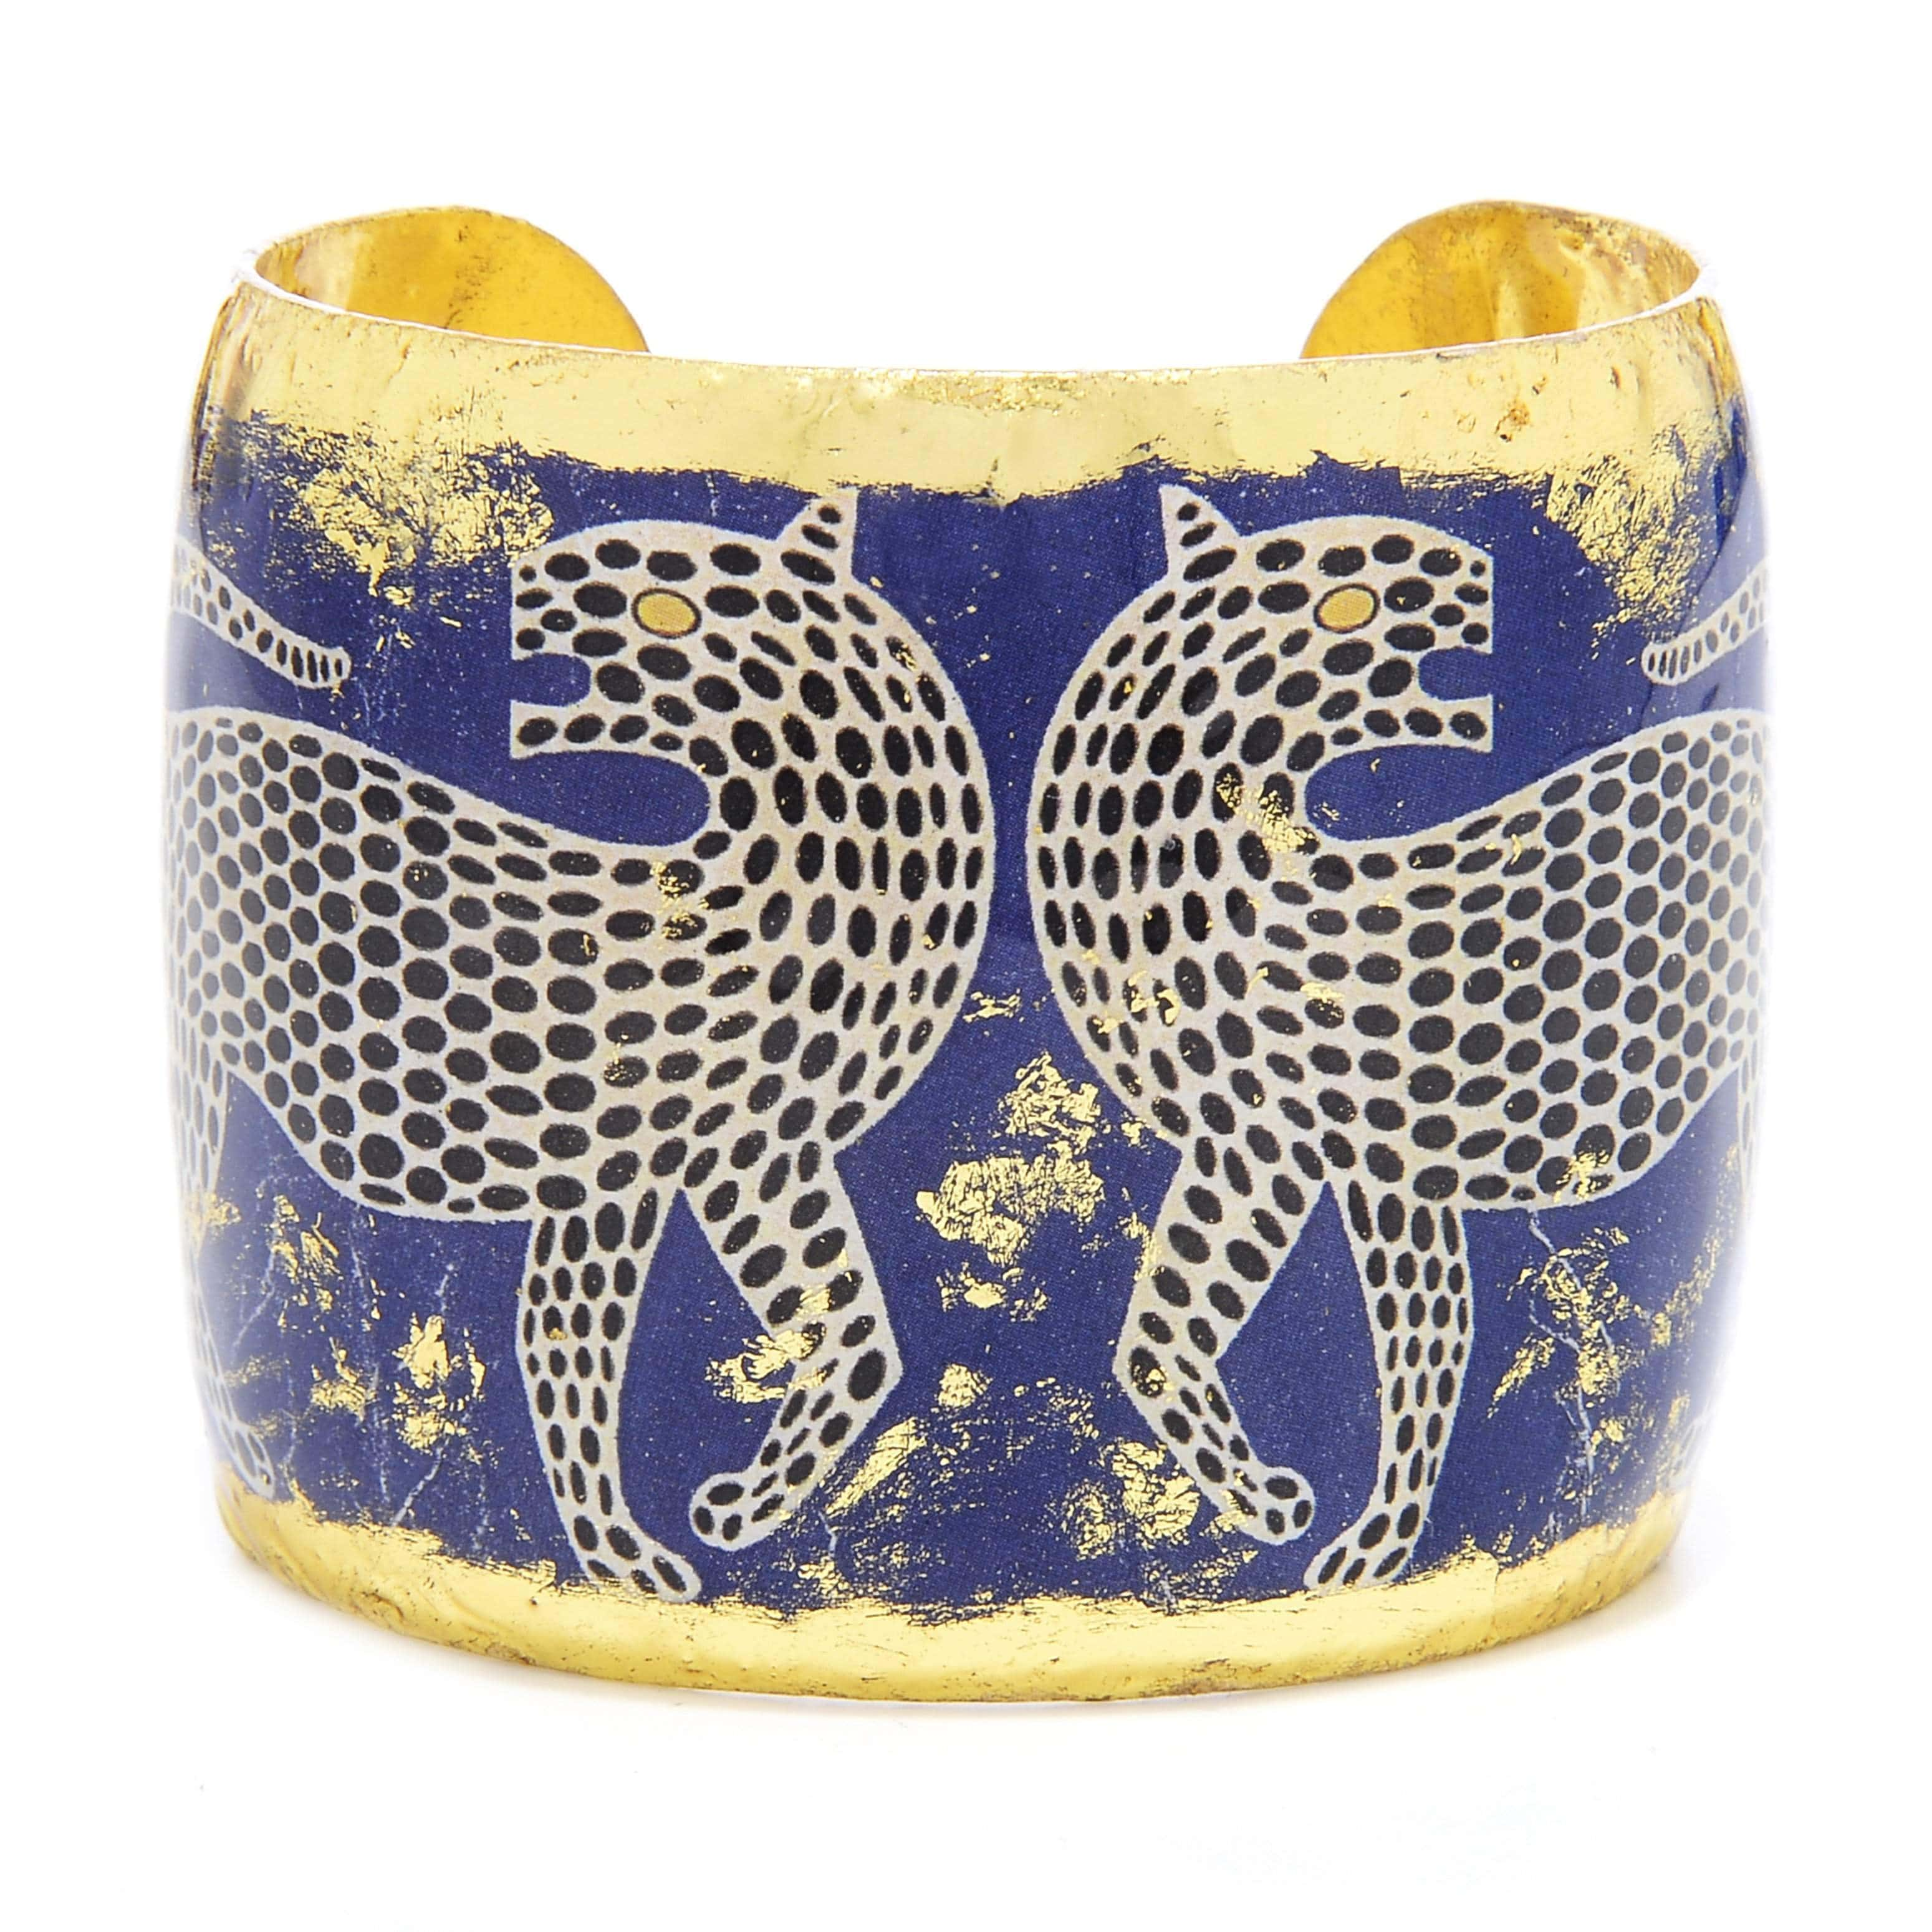 "Mythic Jaguar 2"" Gold Cuff - HS135-Evocateur-Renee Taylor Gallery"